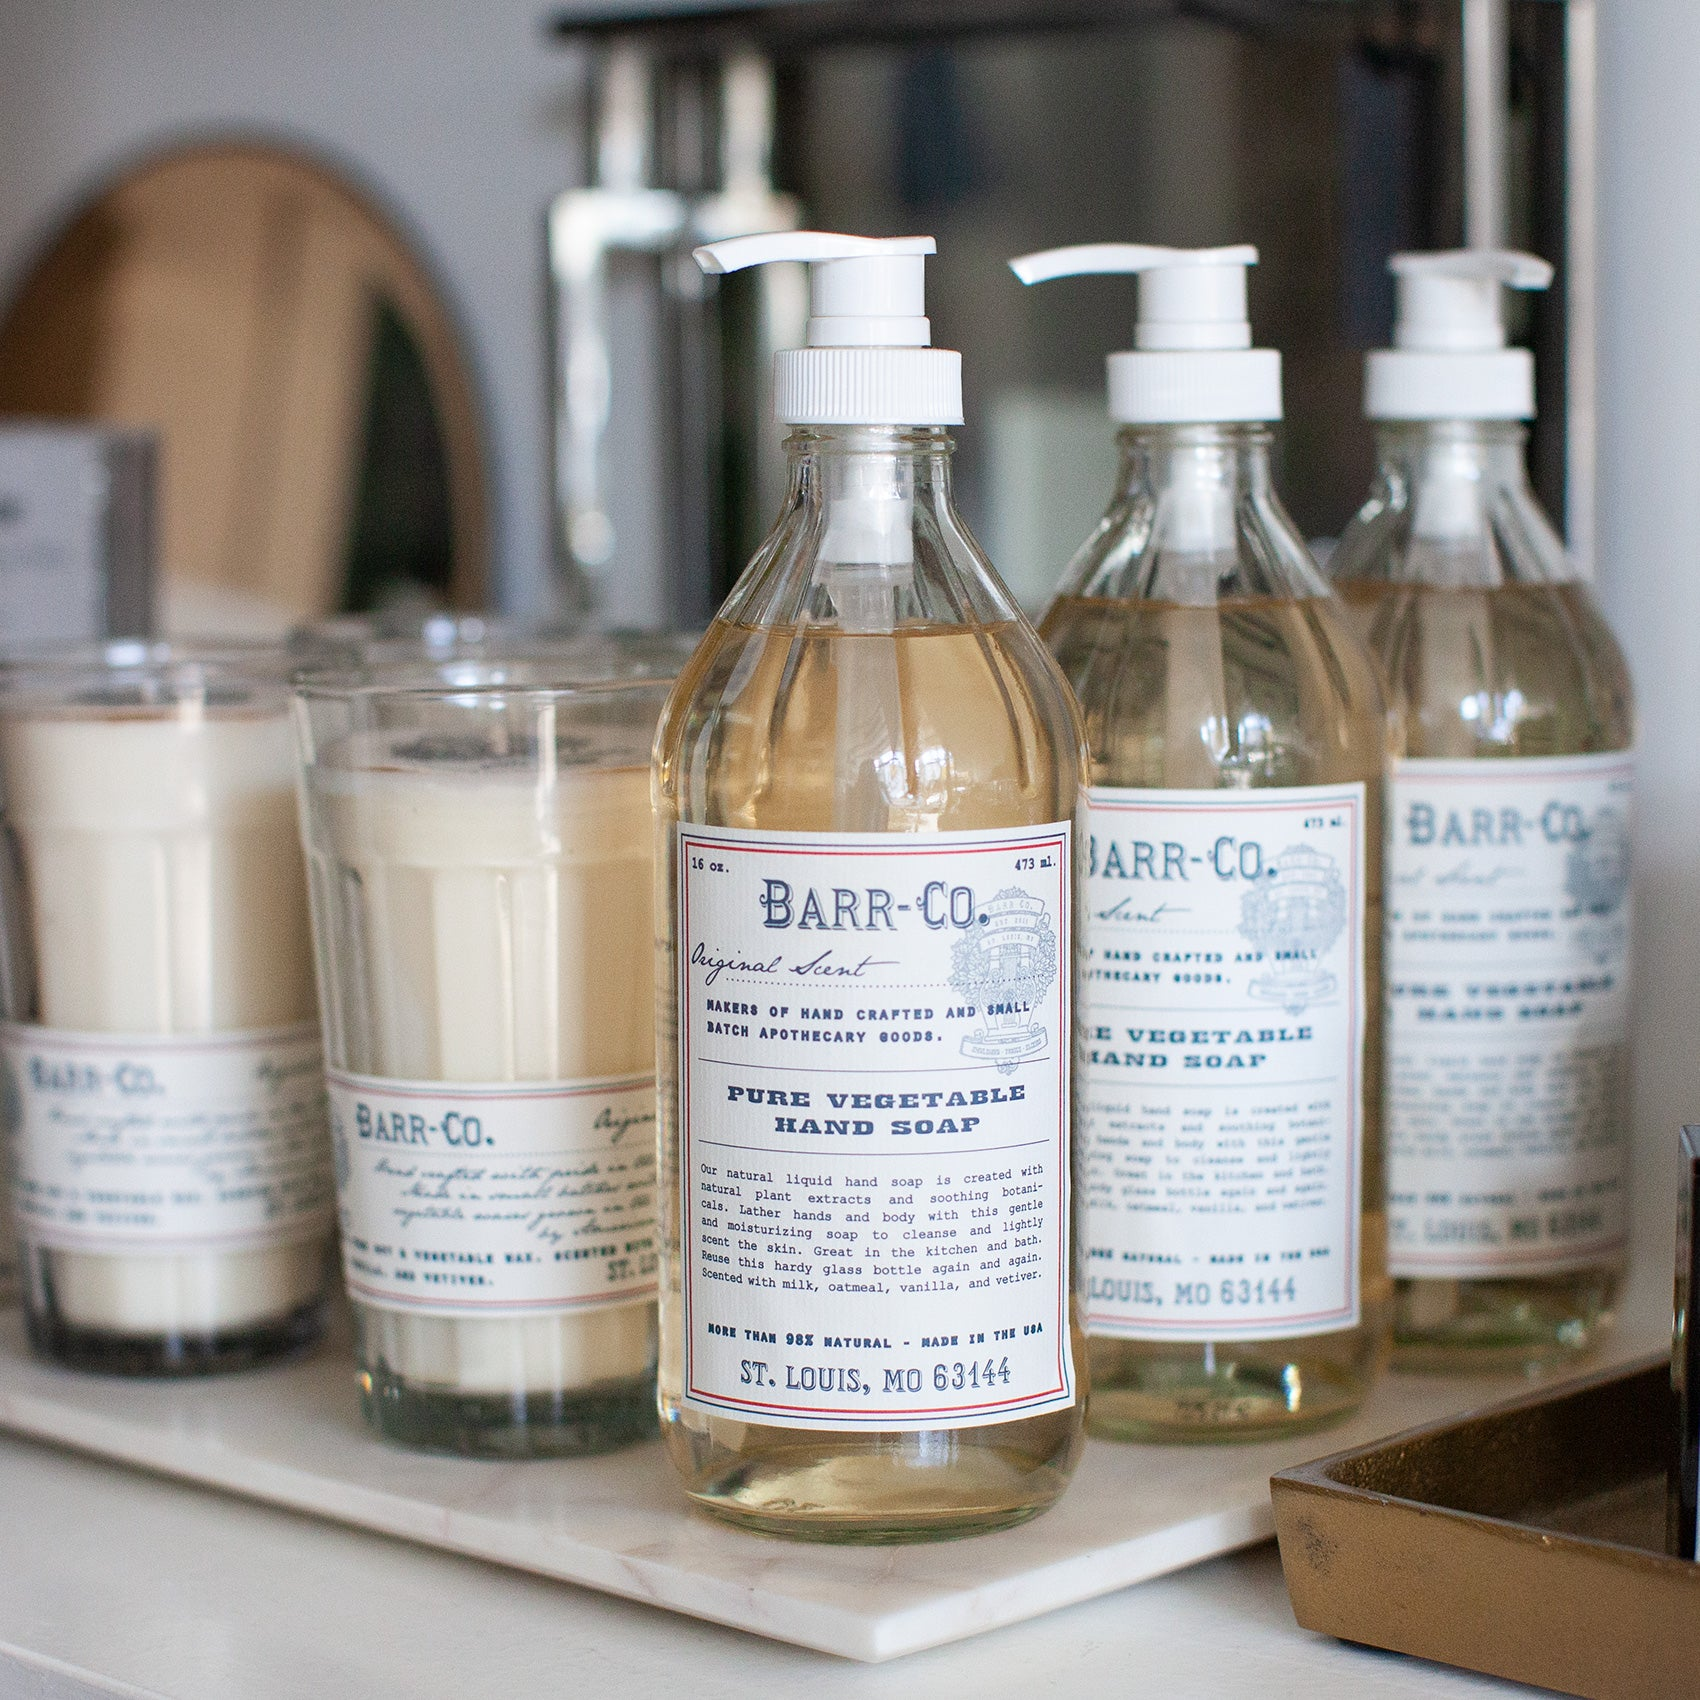 Barr-Co Original Hand Wash